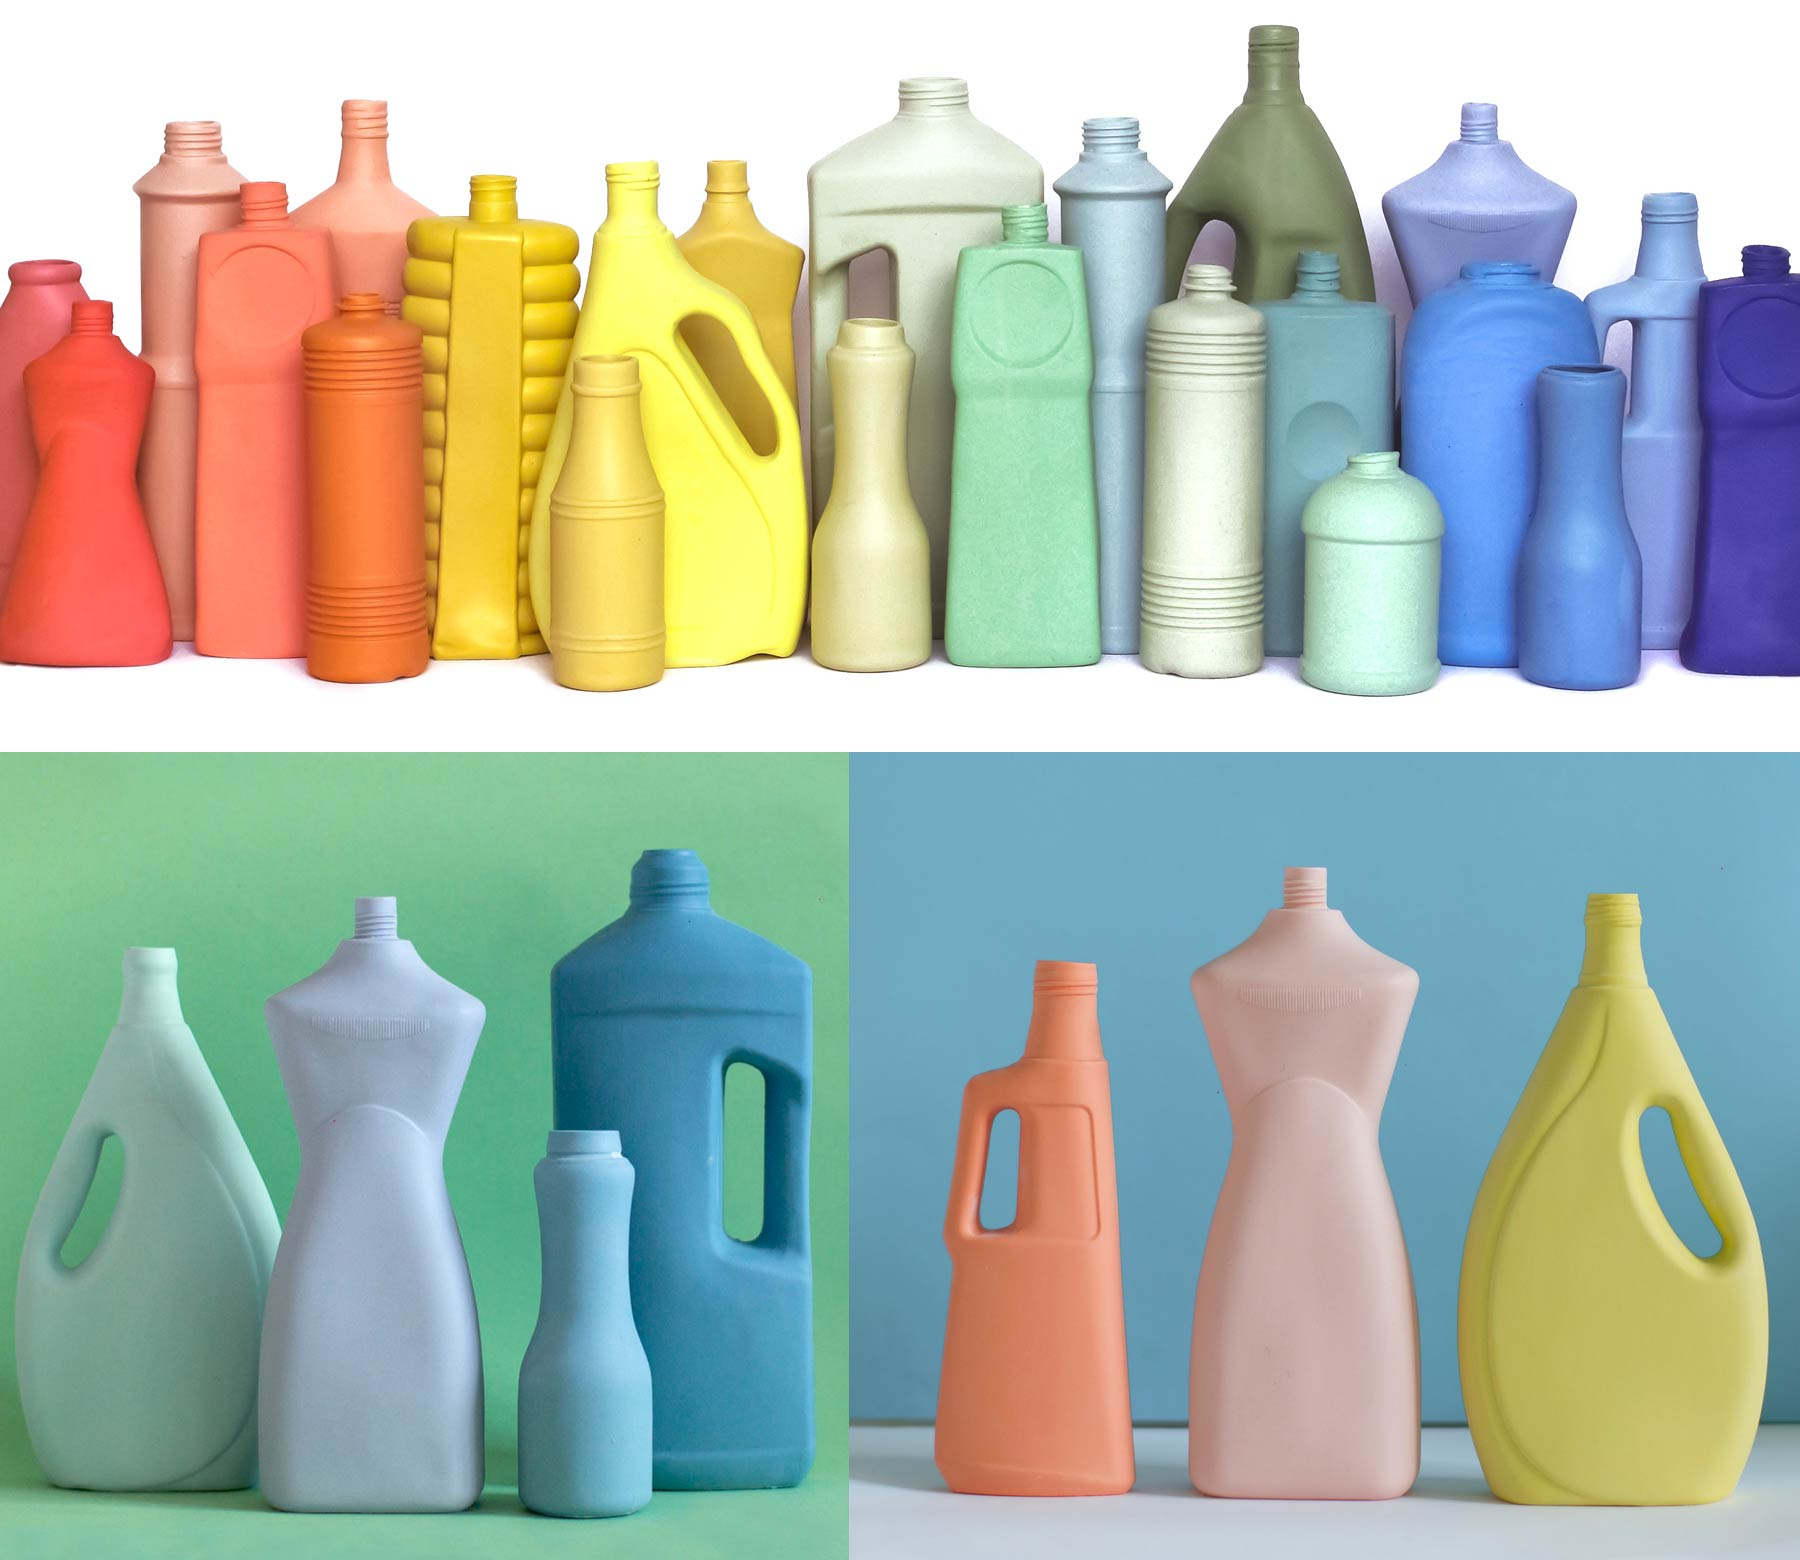 China recipients shaped as cleaning product plastic bottles.